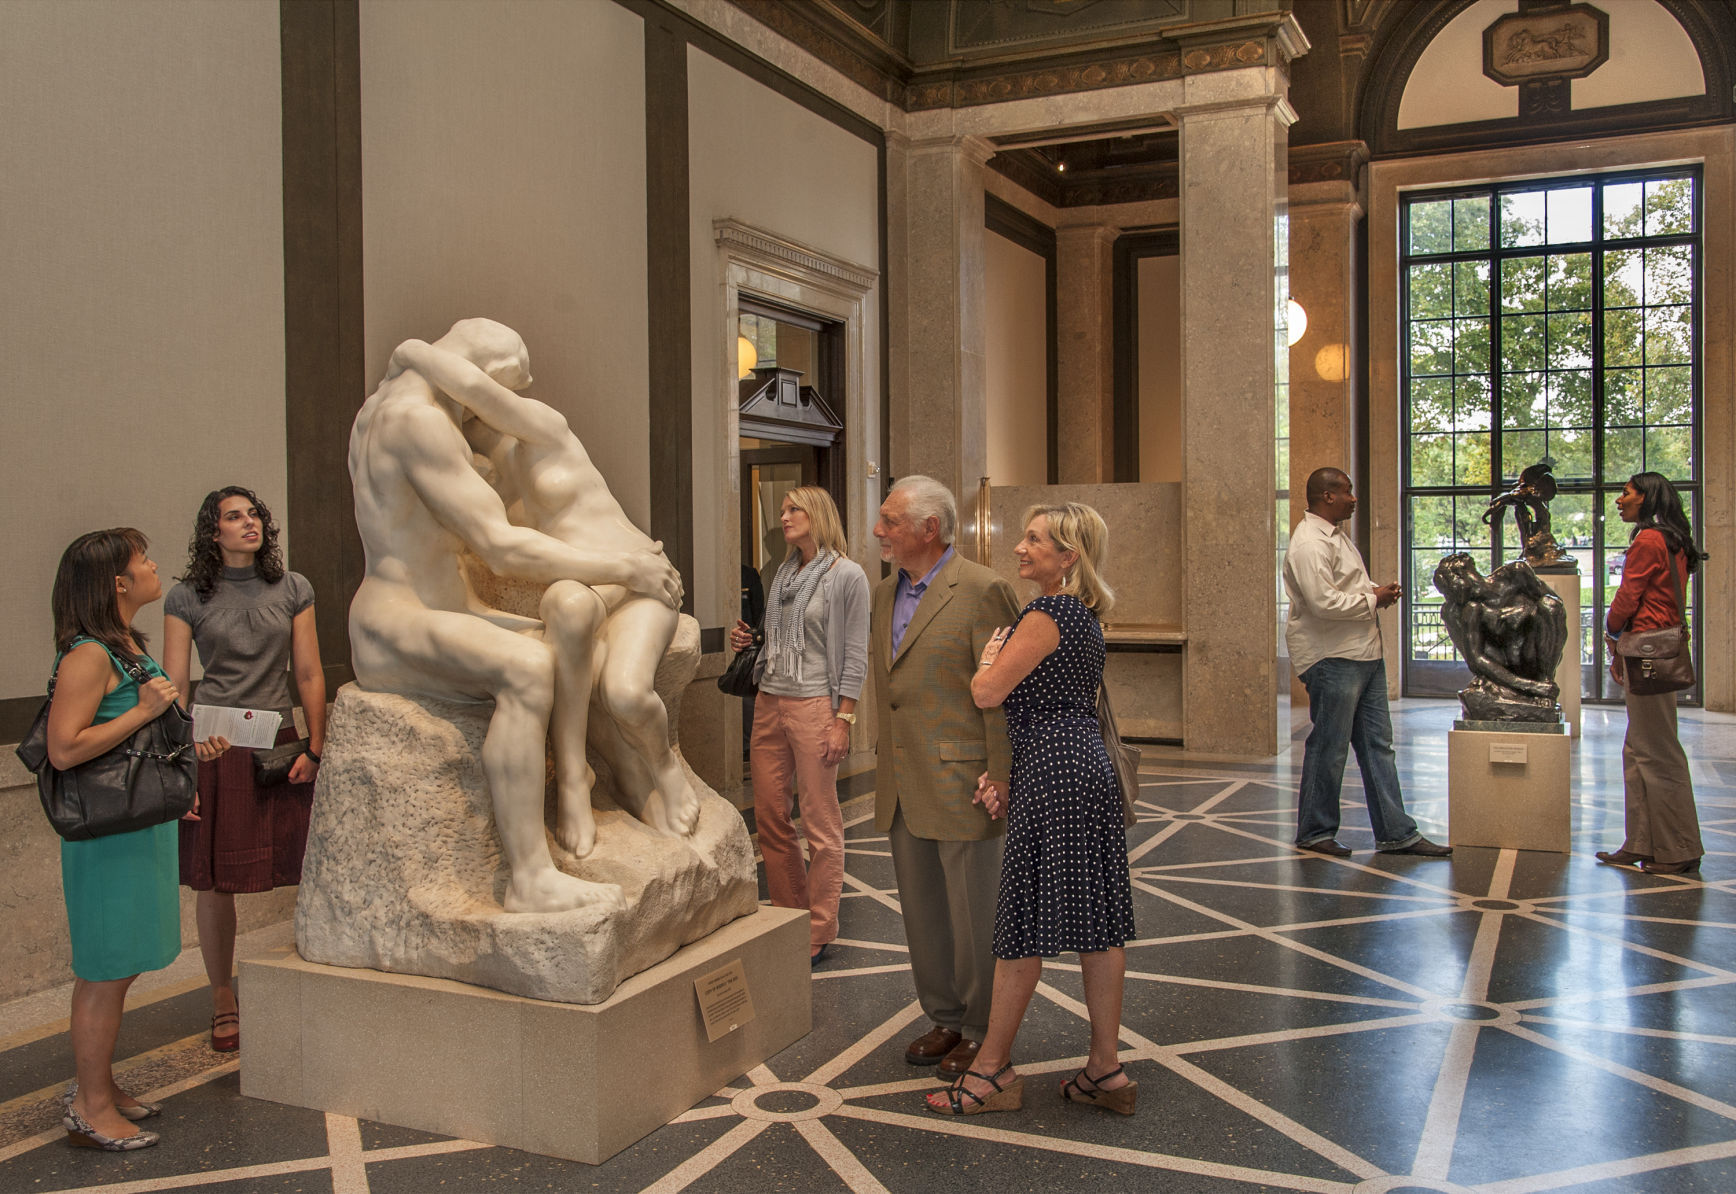 The Rodin Museum & The work of Auguste Rodin is on display | Lifestyle | phillytrib.com pezcame.com